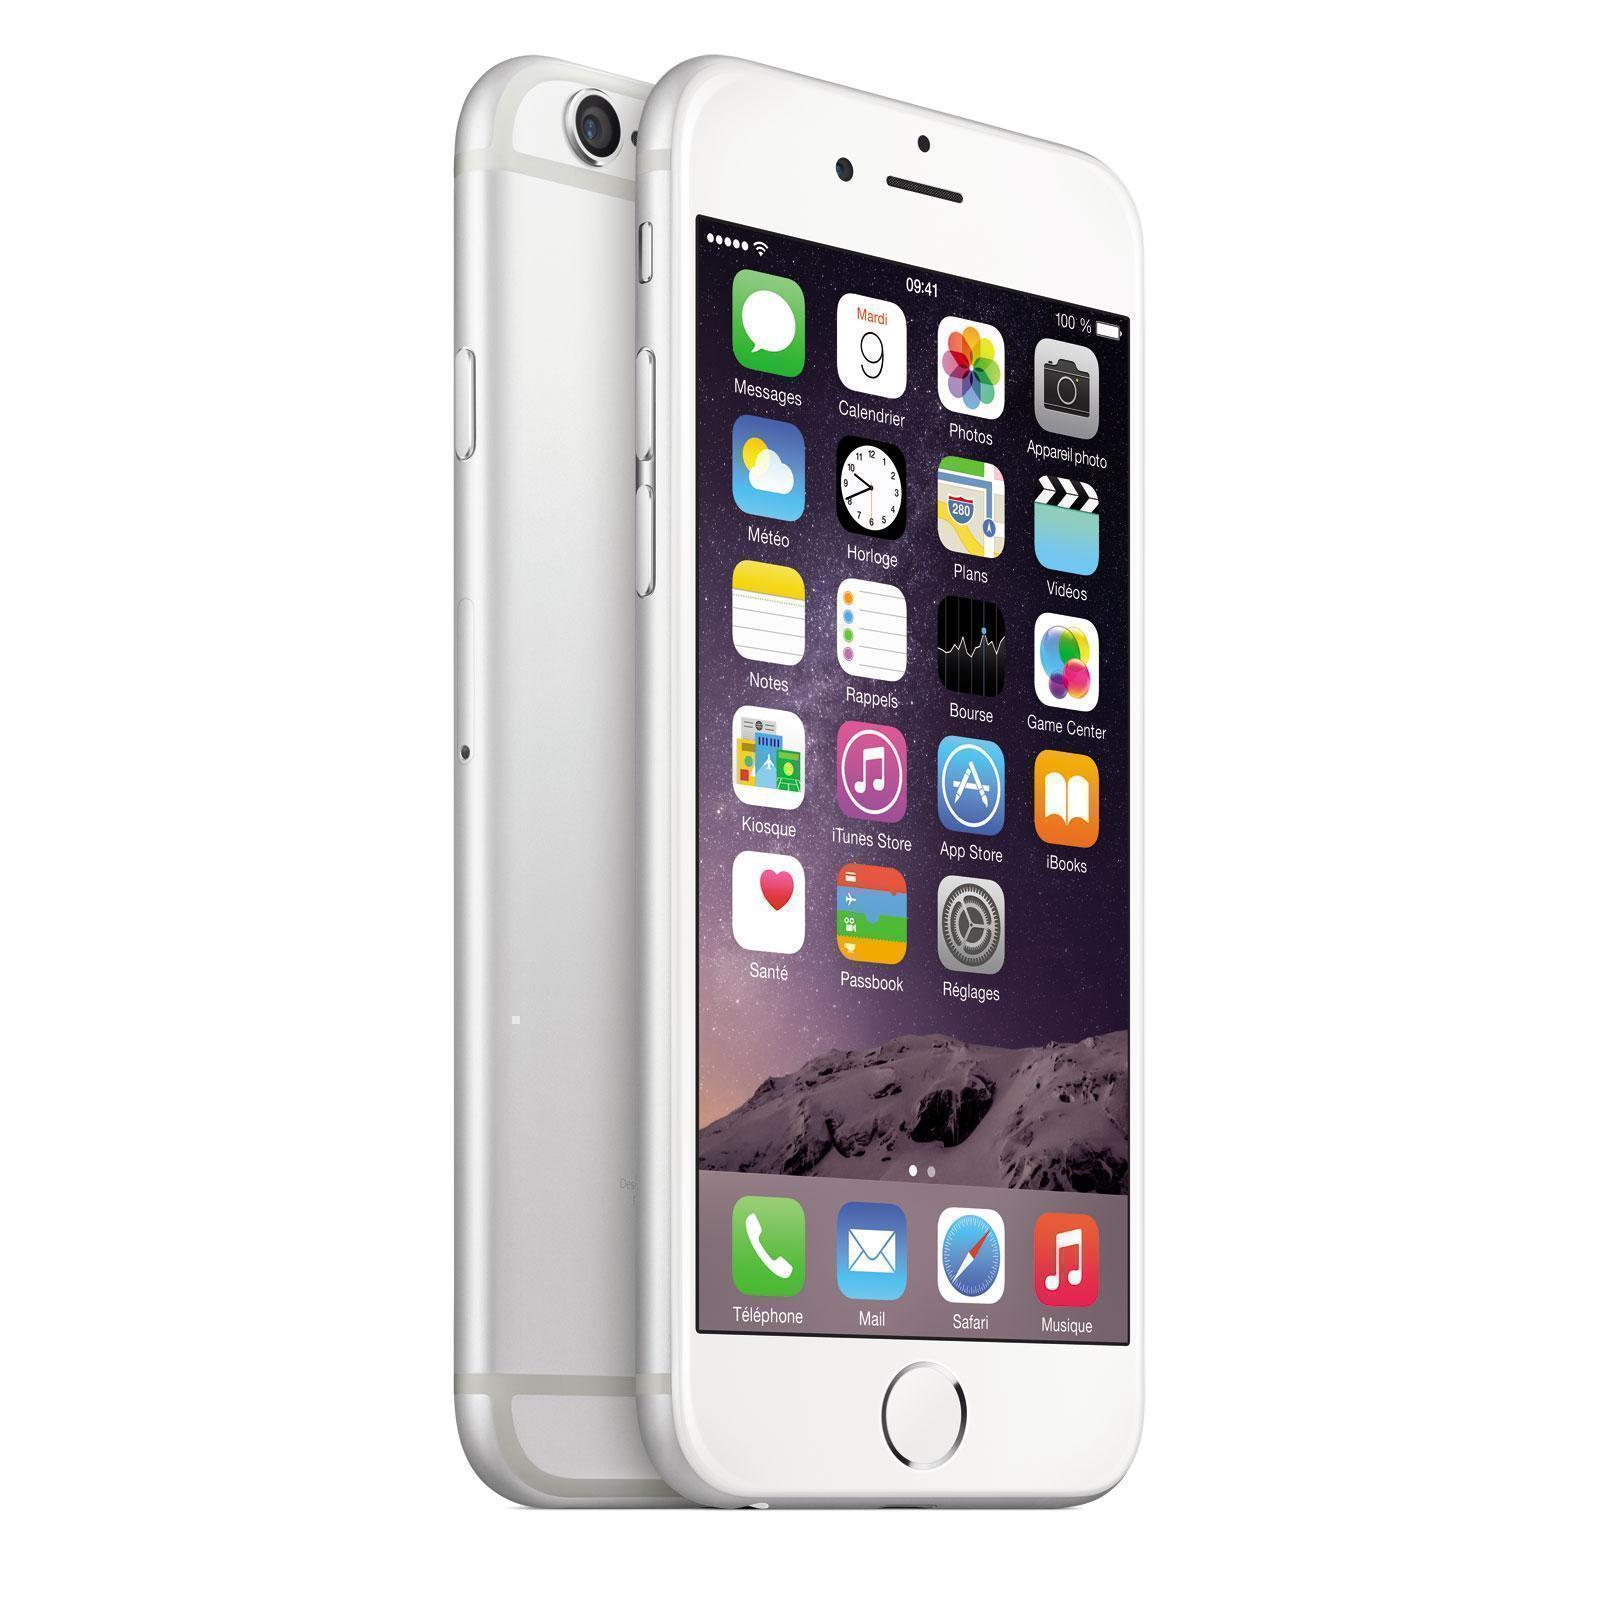 Precio Iphone  Plus Gb Media Markt